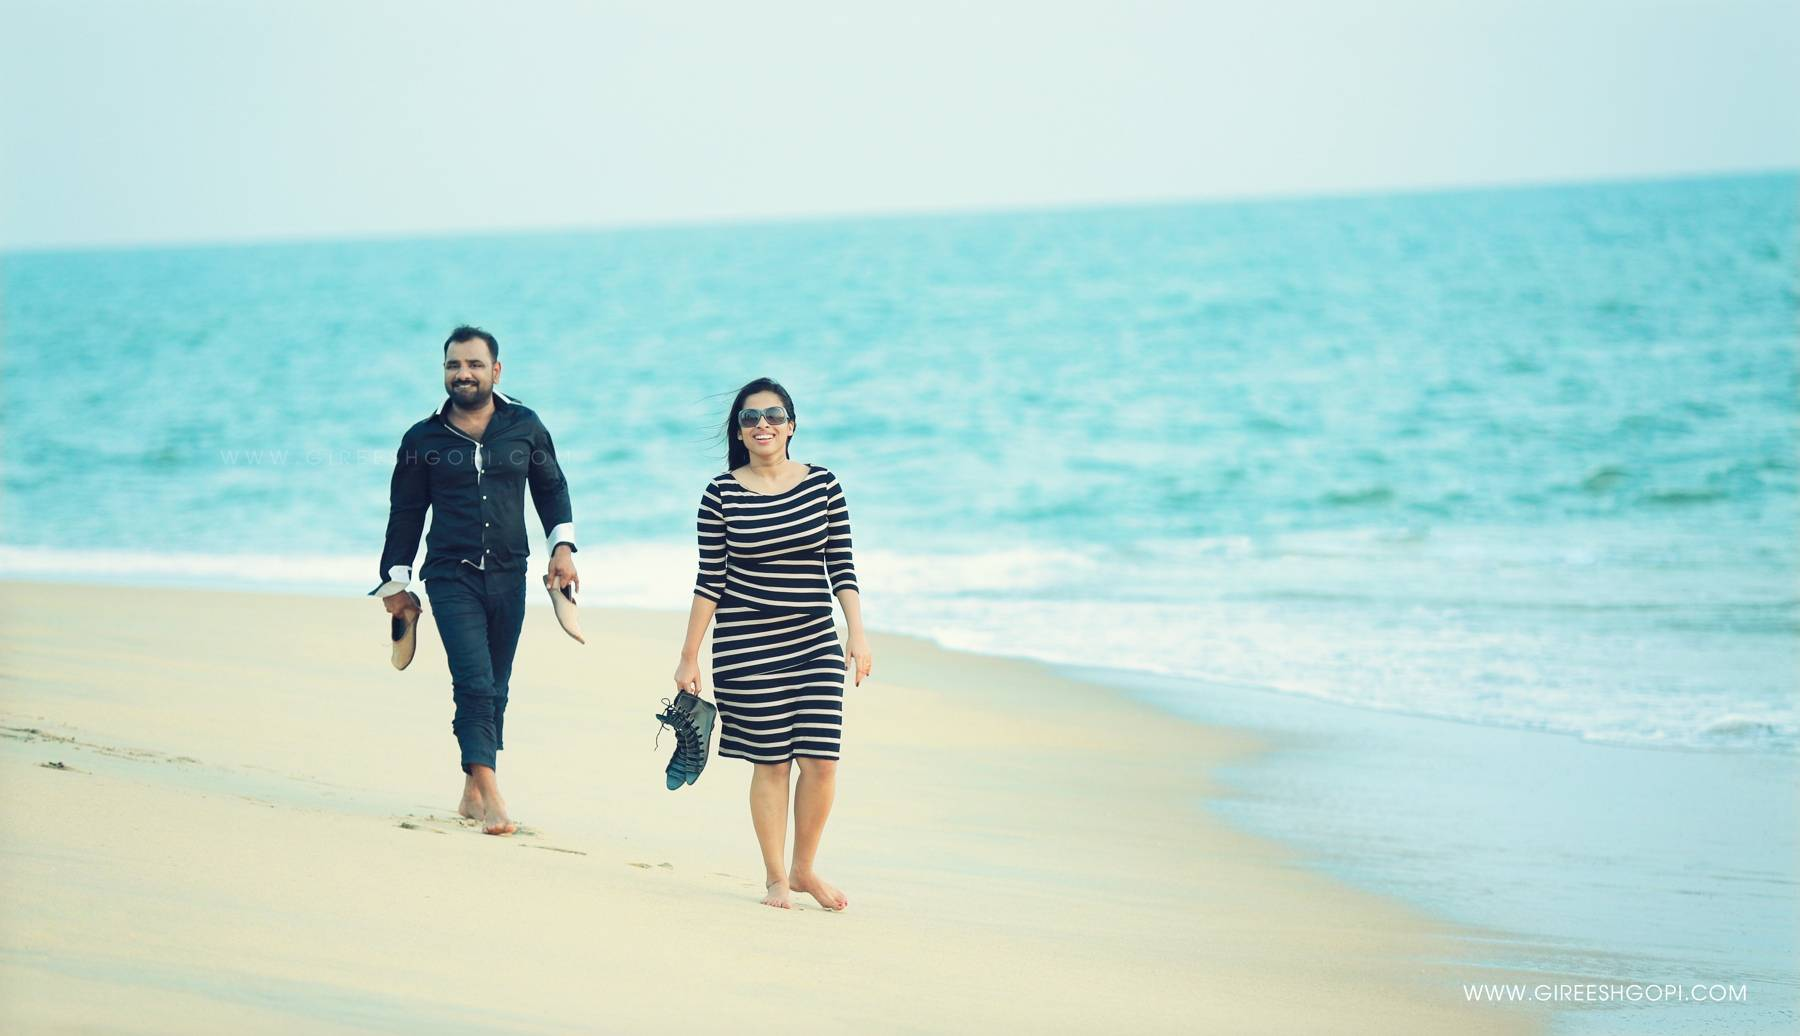 candid photography, Candid Photographer, Kerala, Kochi